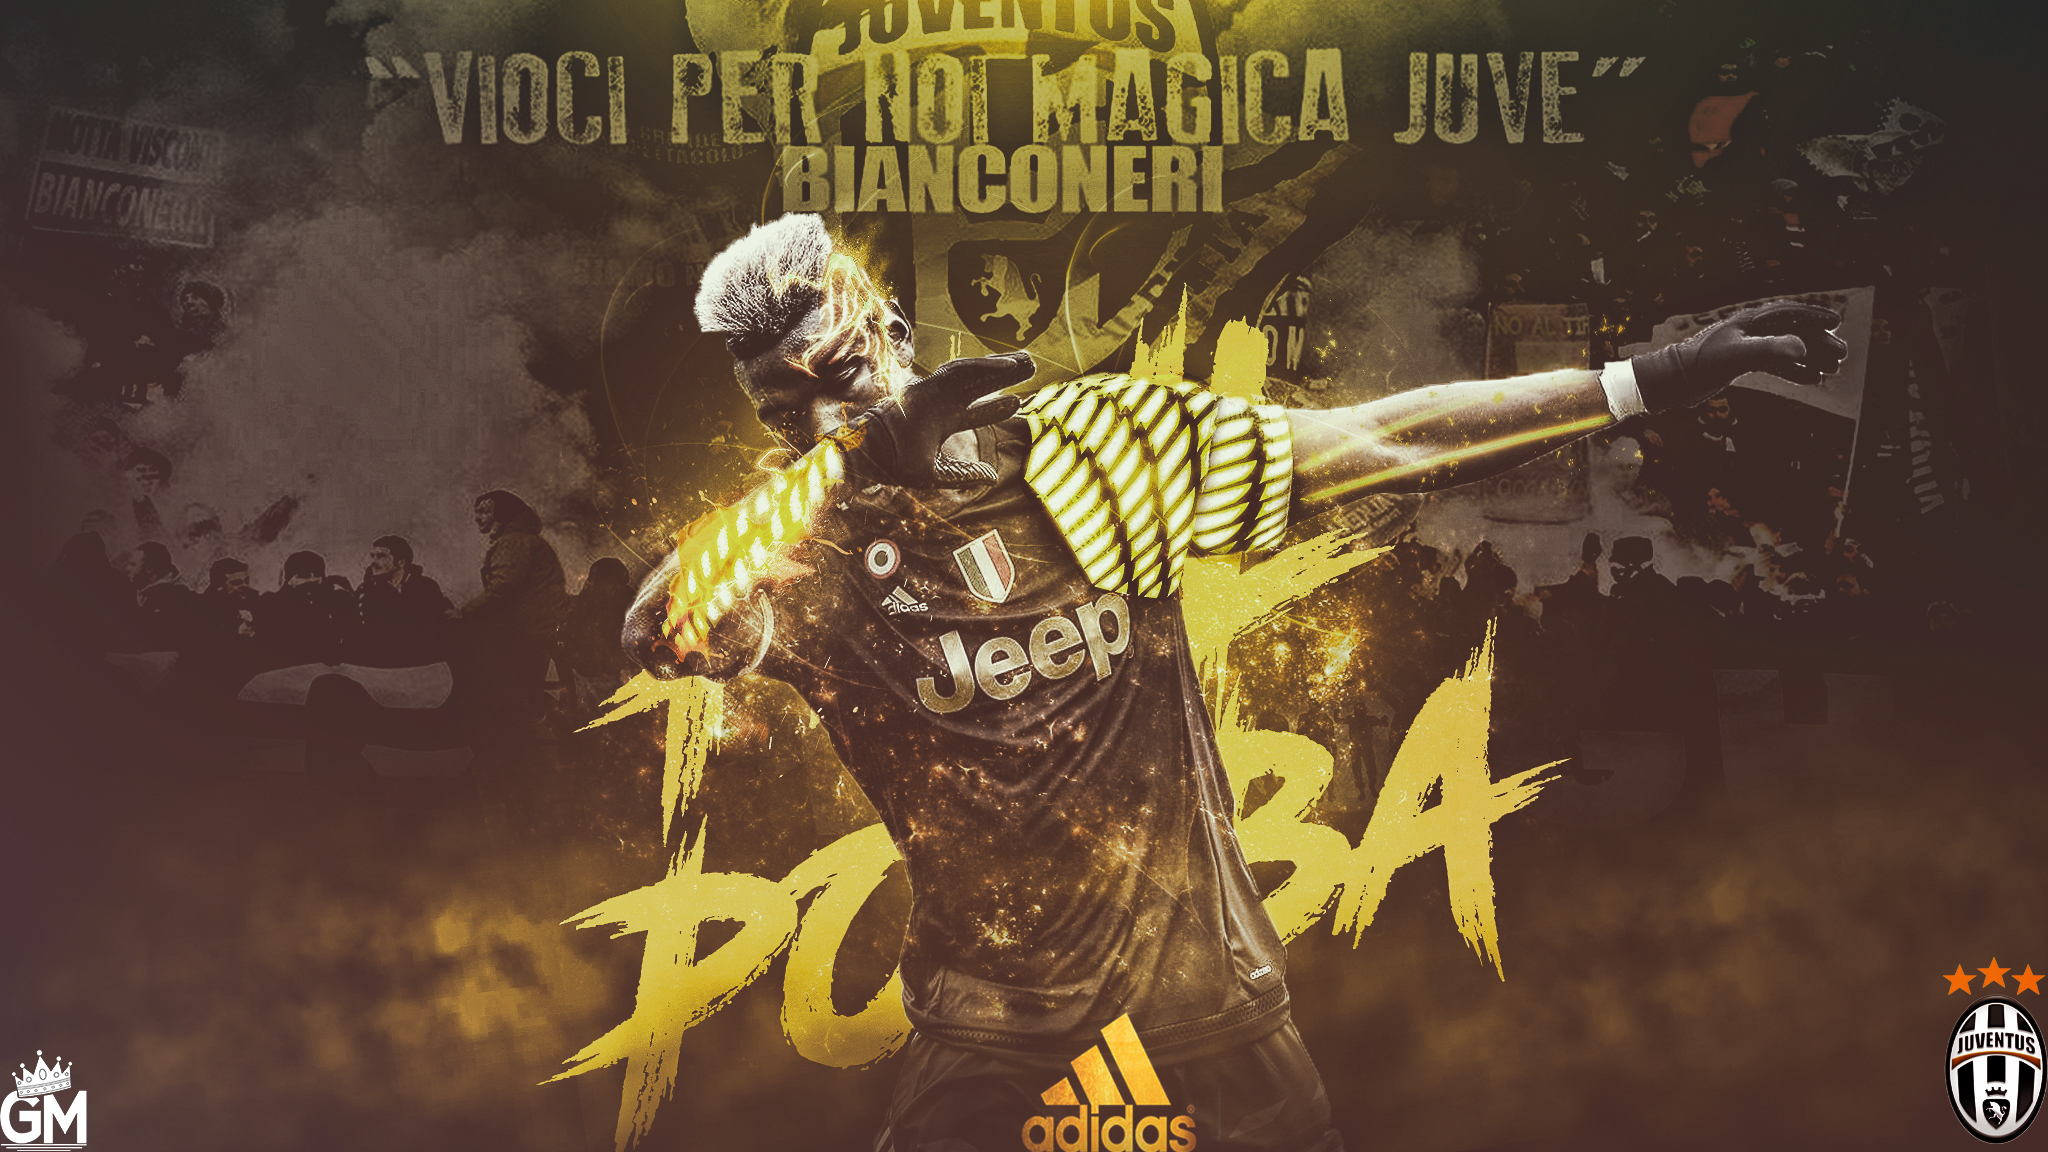 Paul pogba wallpaper by graphicalmaniacs on deviantart for Fond d ecran juventus pc